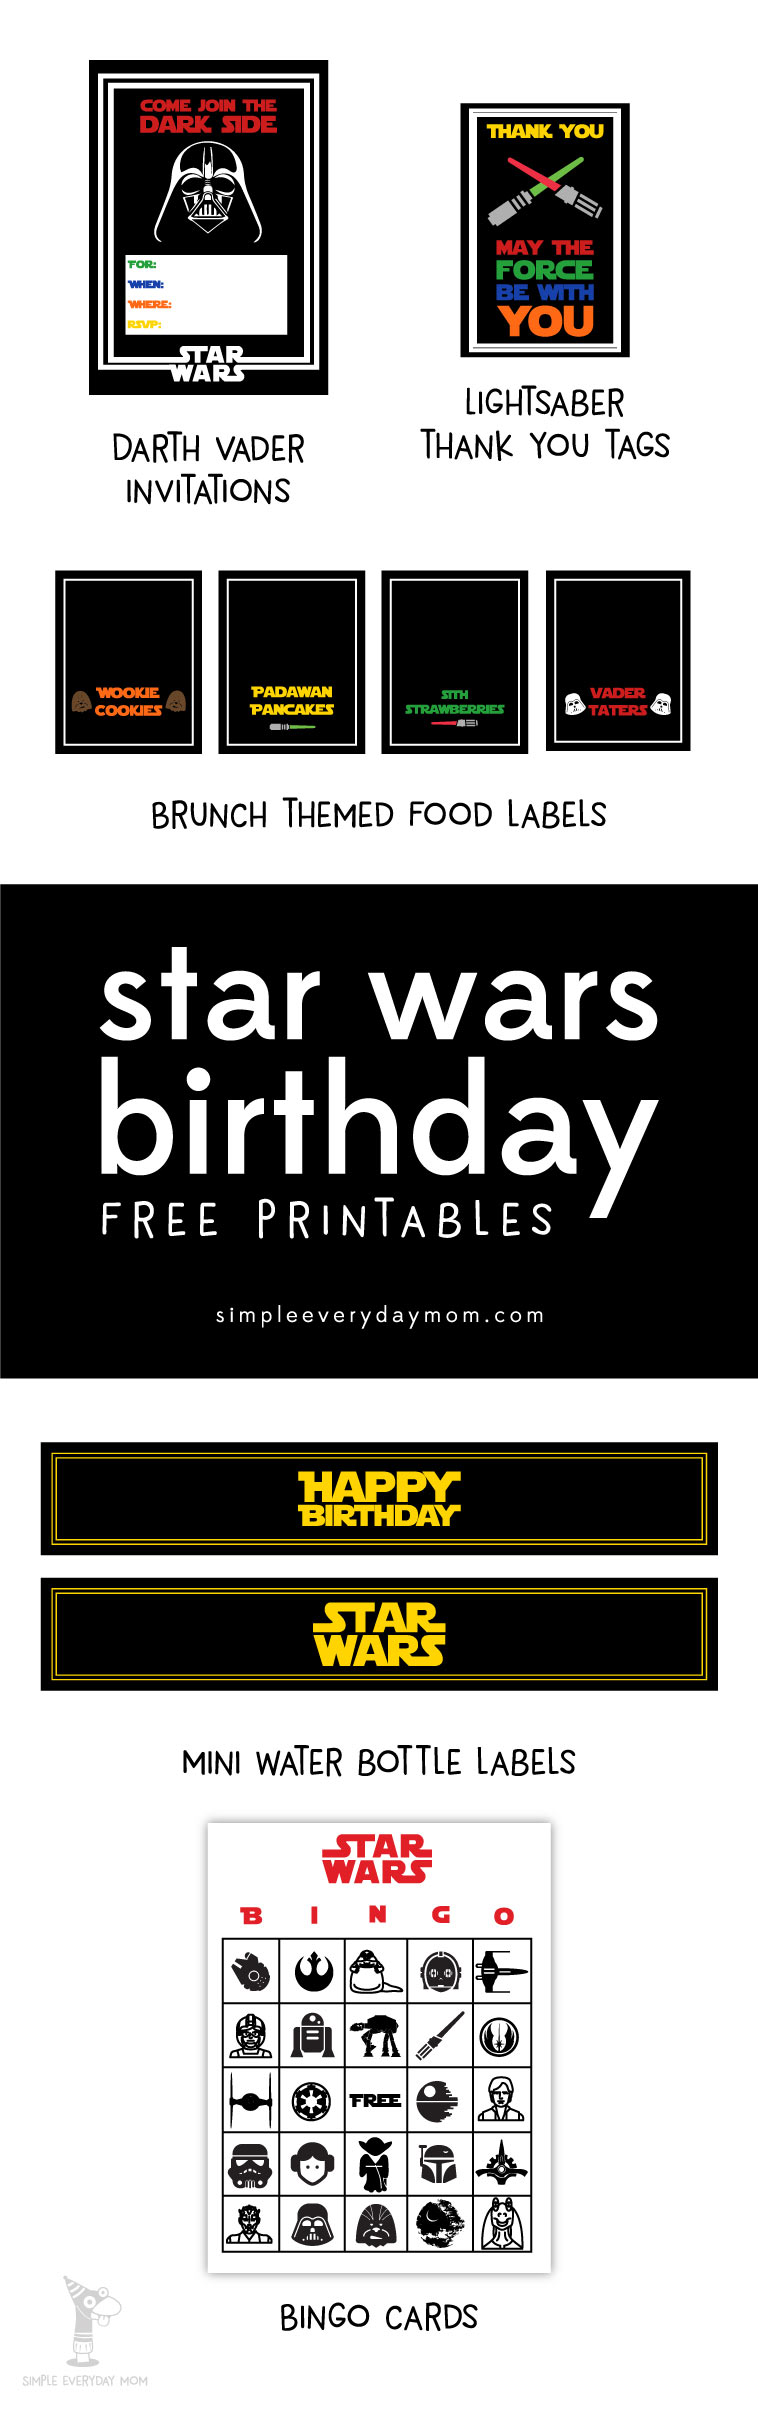 Throw an amazing, yet simple Star Wars themed birthday party for your son. It'll be a party he'll never forget.